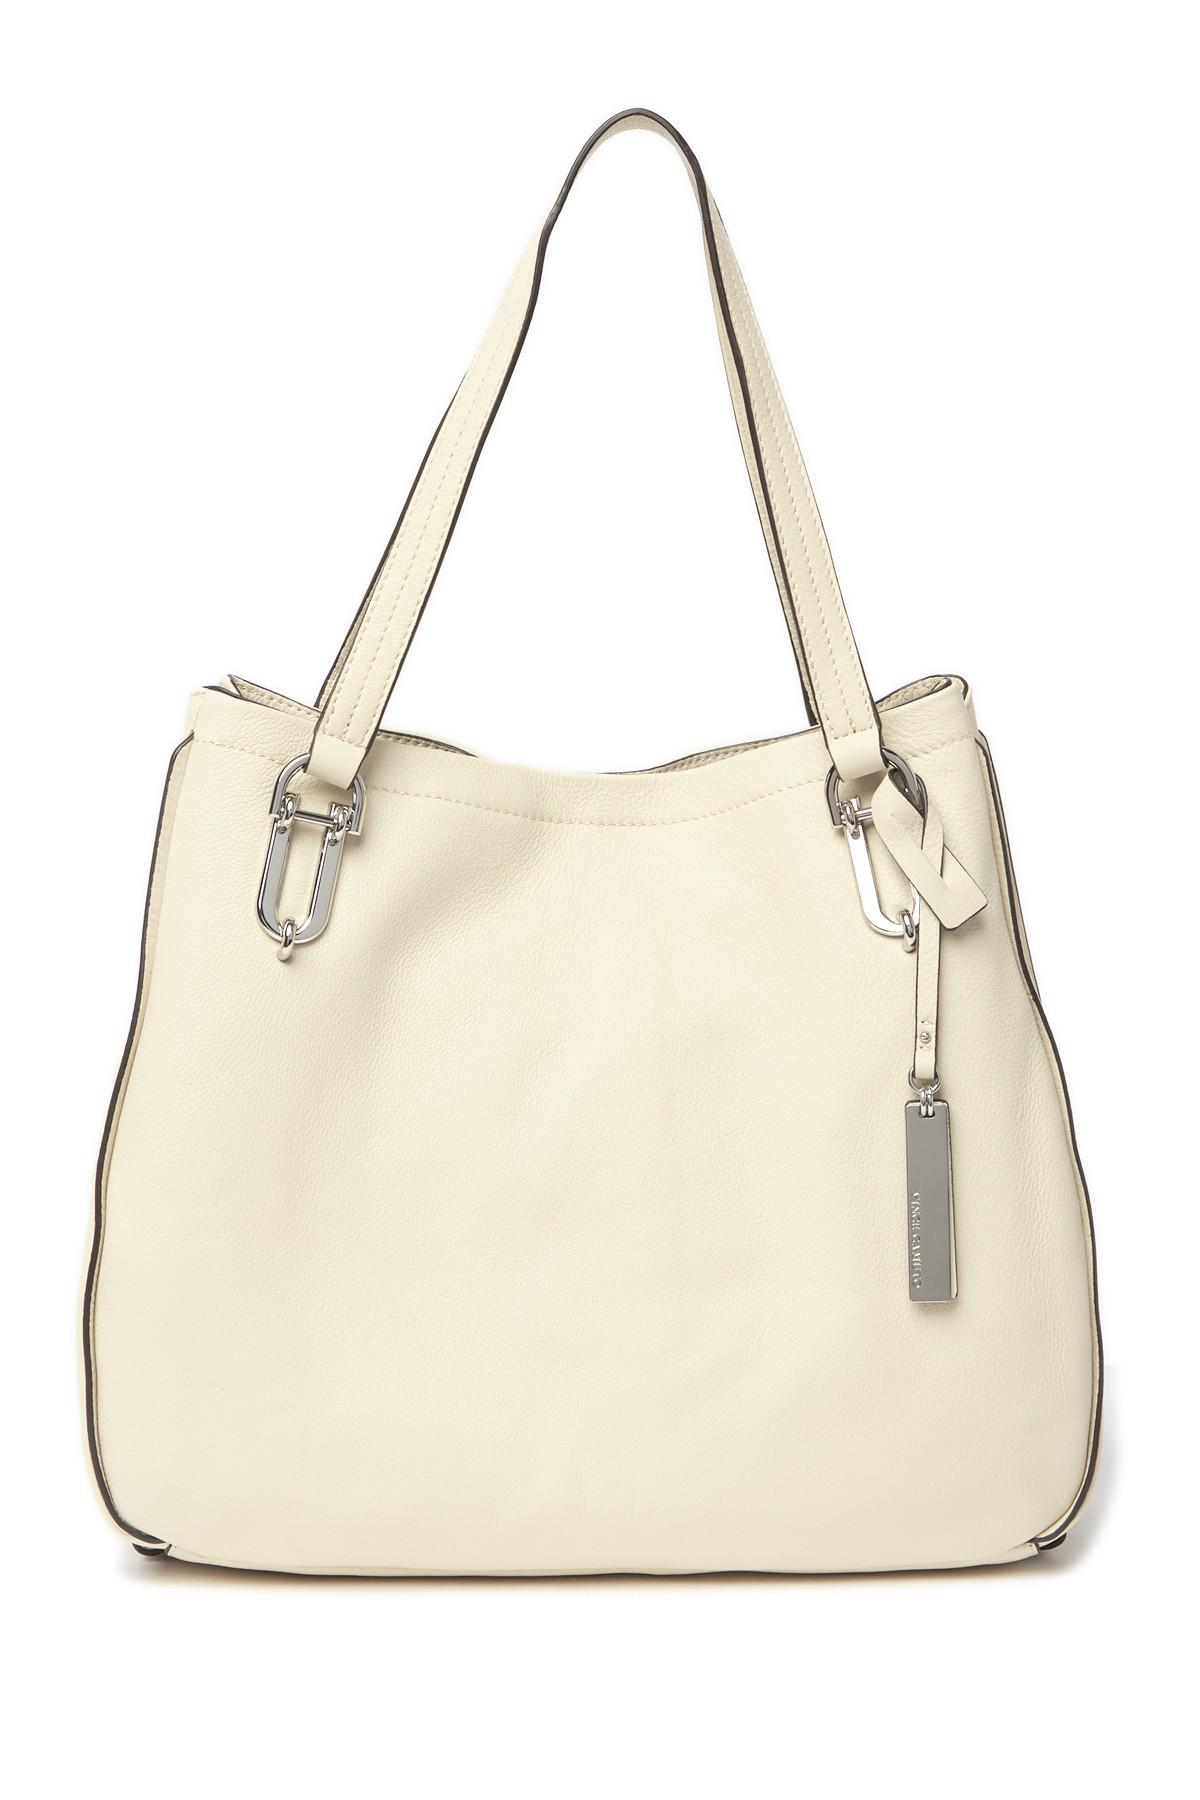 7e6c5a085d Lyst - Vince Camuto Leany Leather Tote Bag in Natural